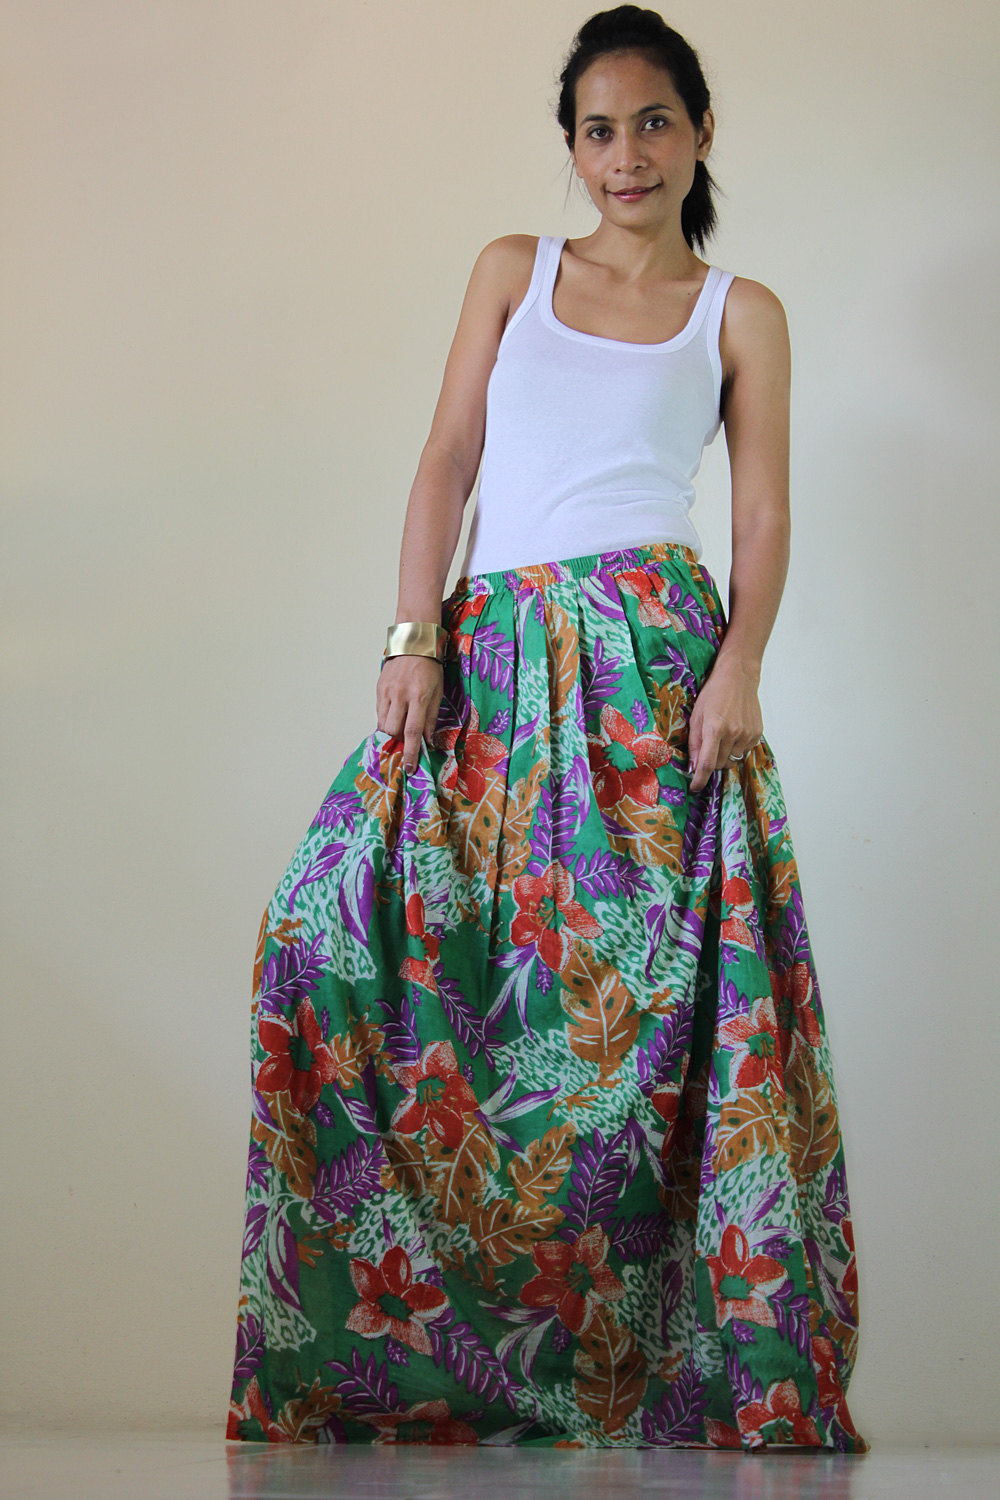 Floral Maxi Skirt : Feel Good Collection II